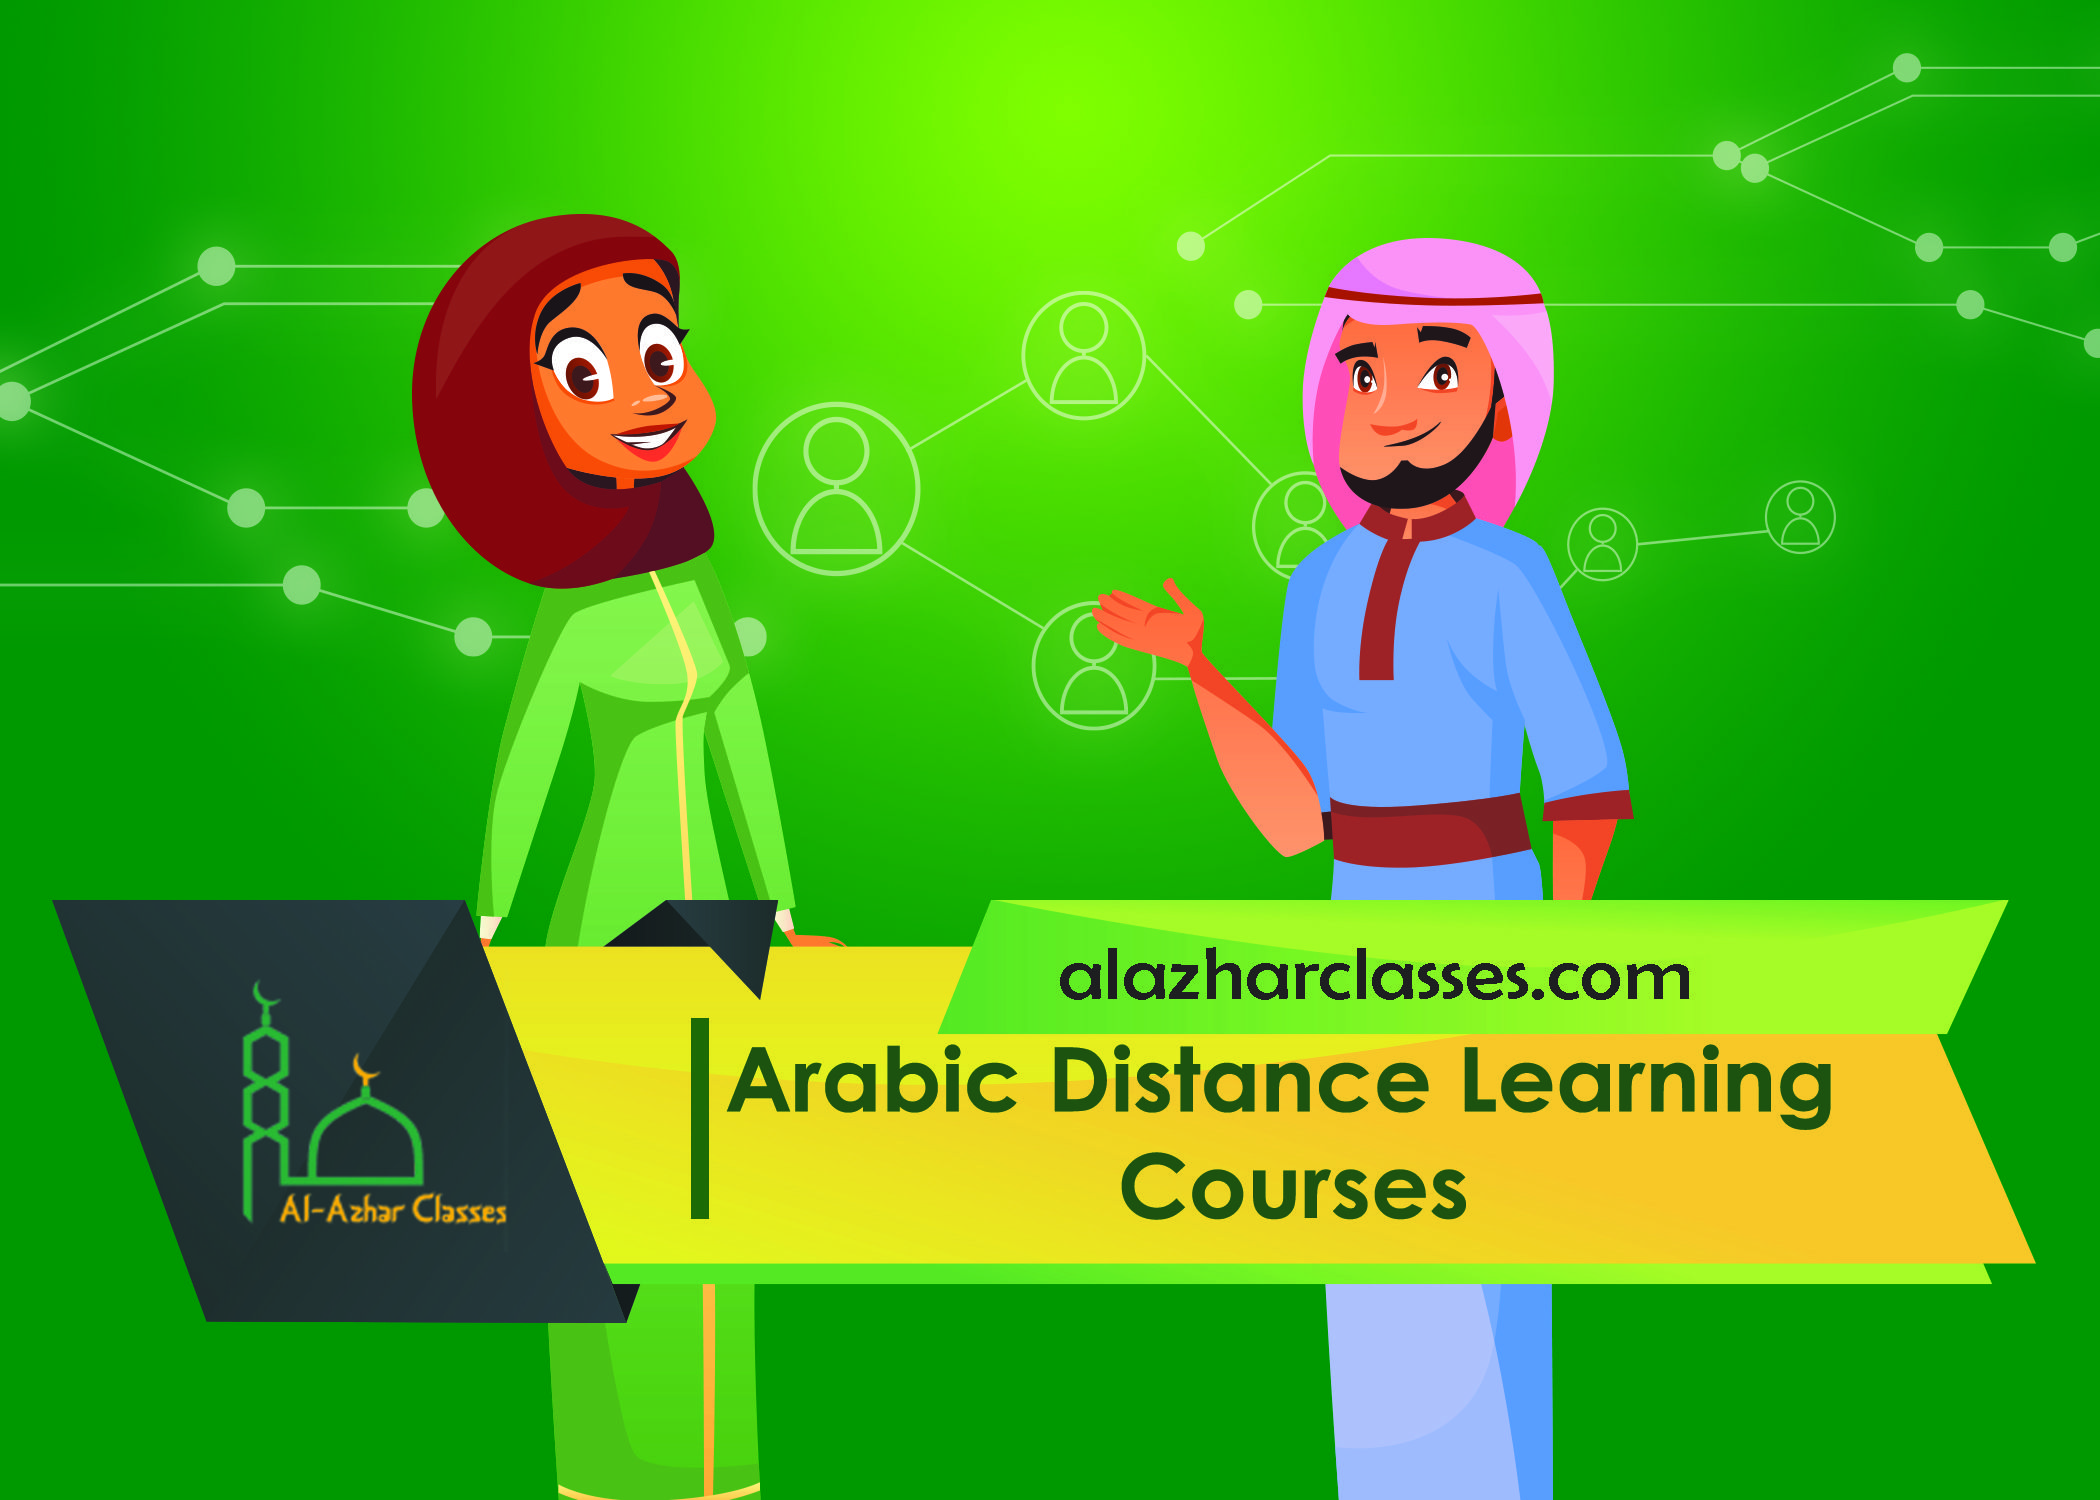 Arabic distance learning courses